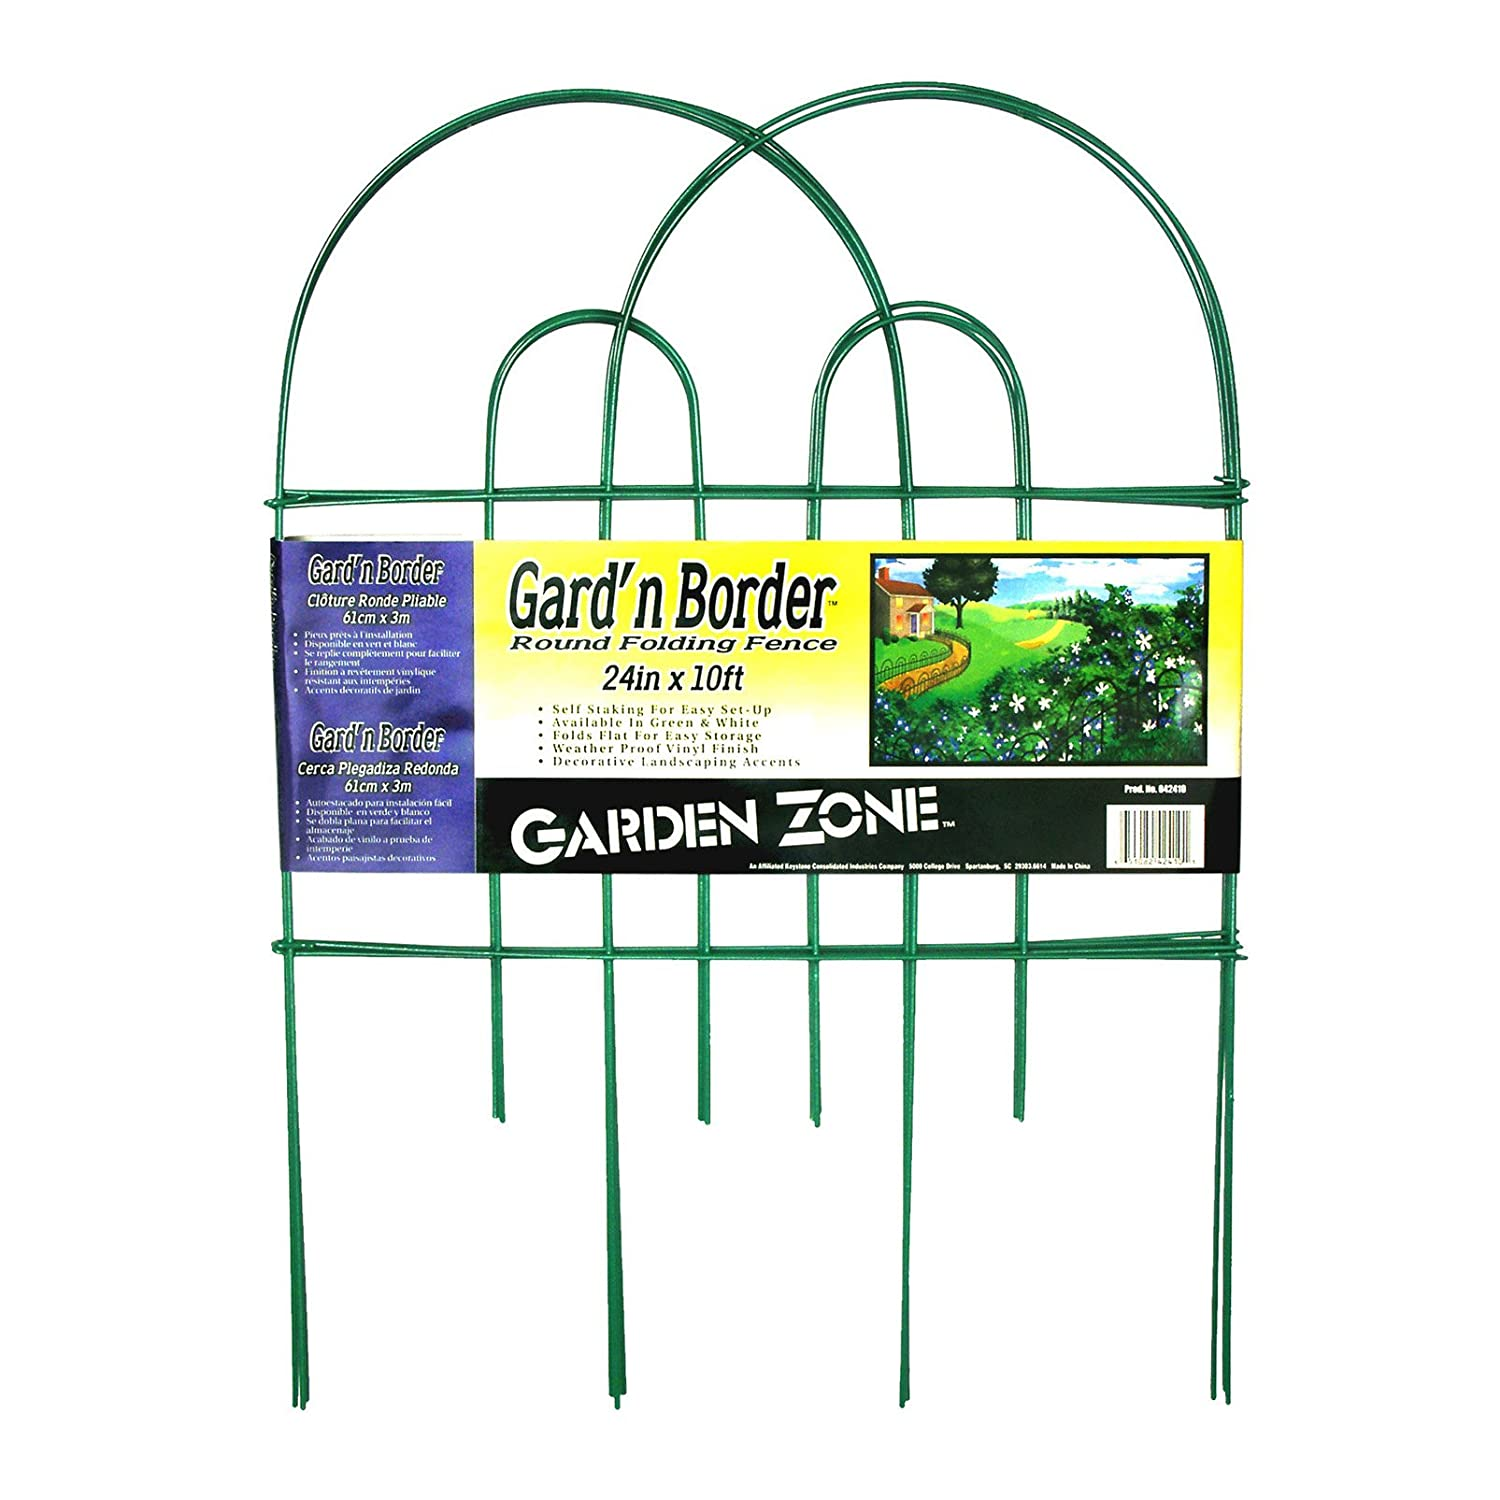 Amazon origin point gardn border round folding fence green amazon origin point gardn border round folding fence green 24 inch x 10 feet garden border edging patio lawn garden baanklon Gallery